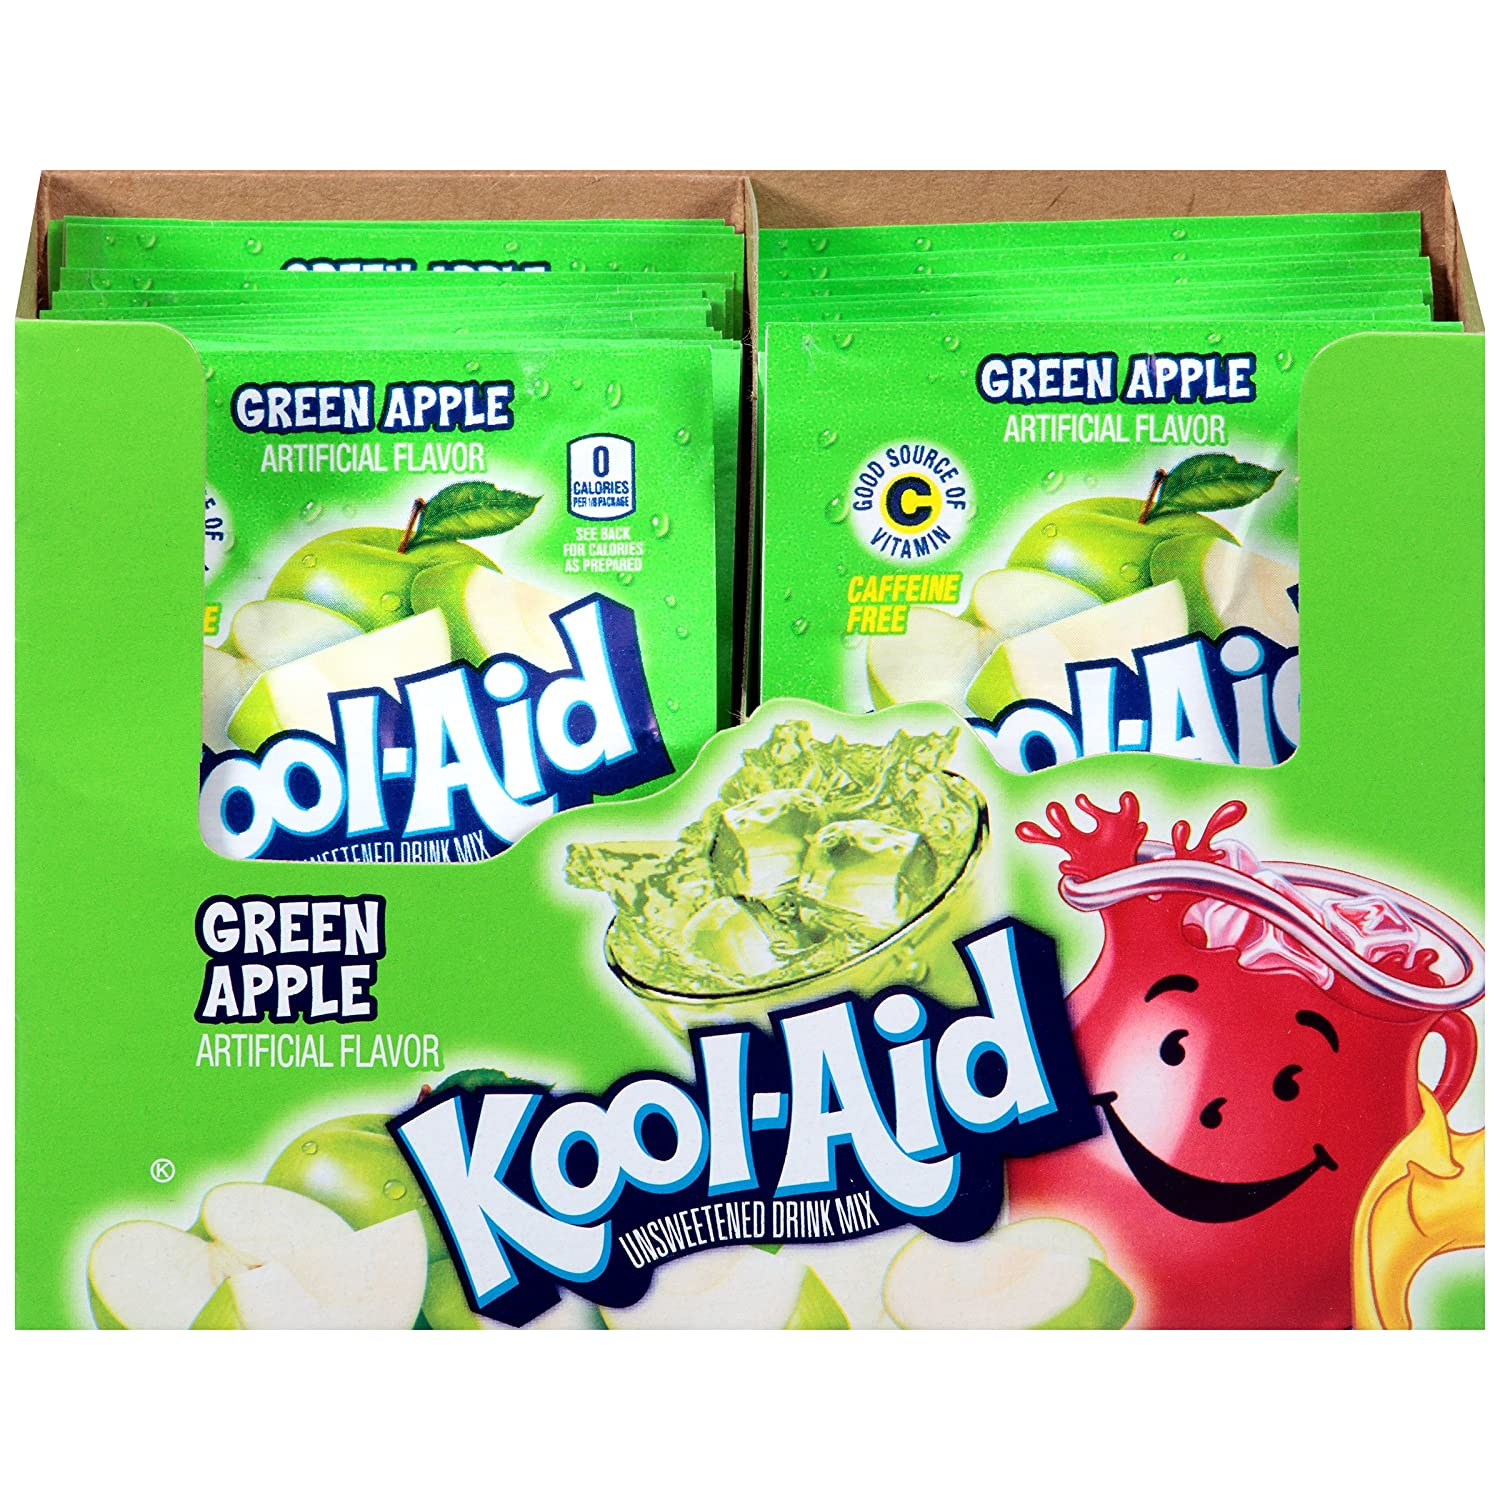 Kool-Aid Green Apple Flavored Unsweetened Caffeine Free Powdered Drink Mix (192 Packets)